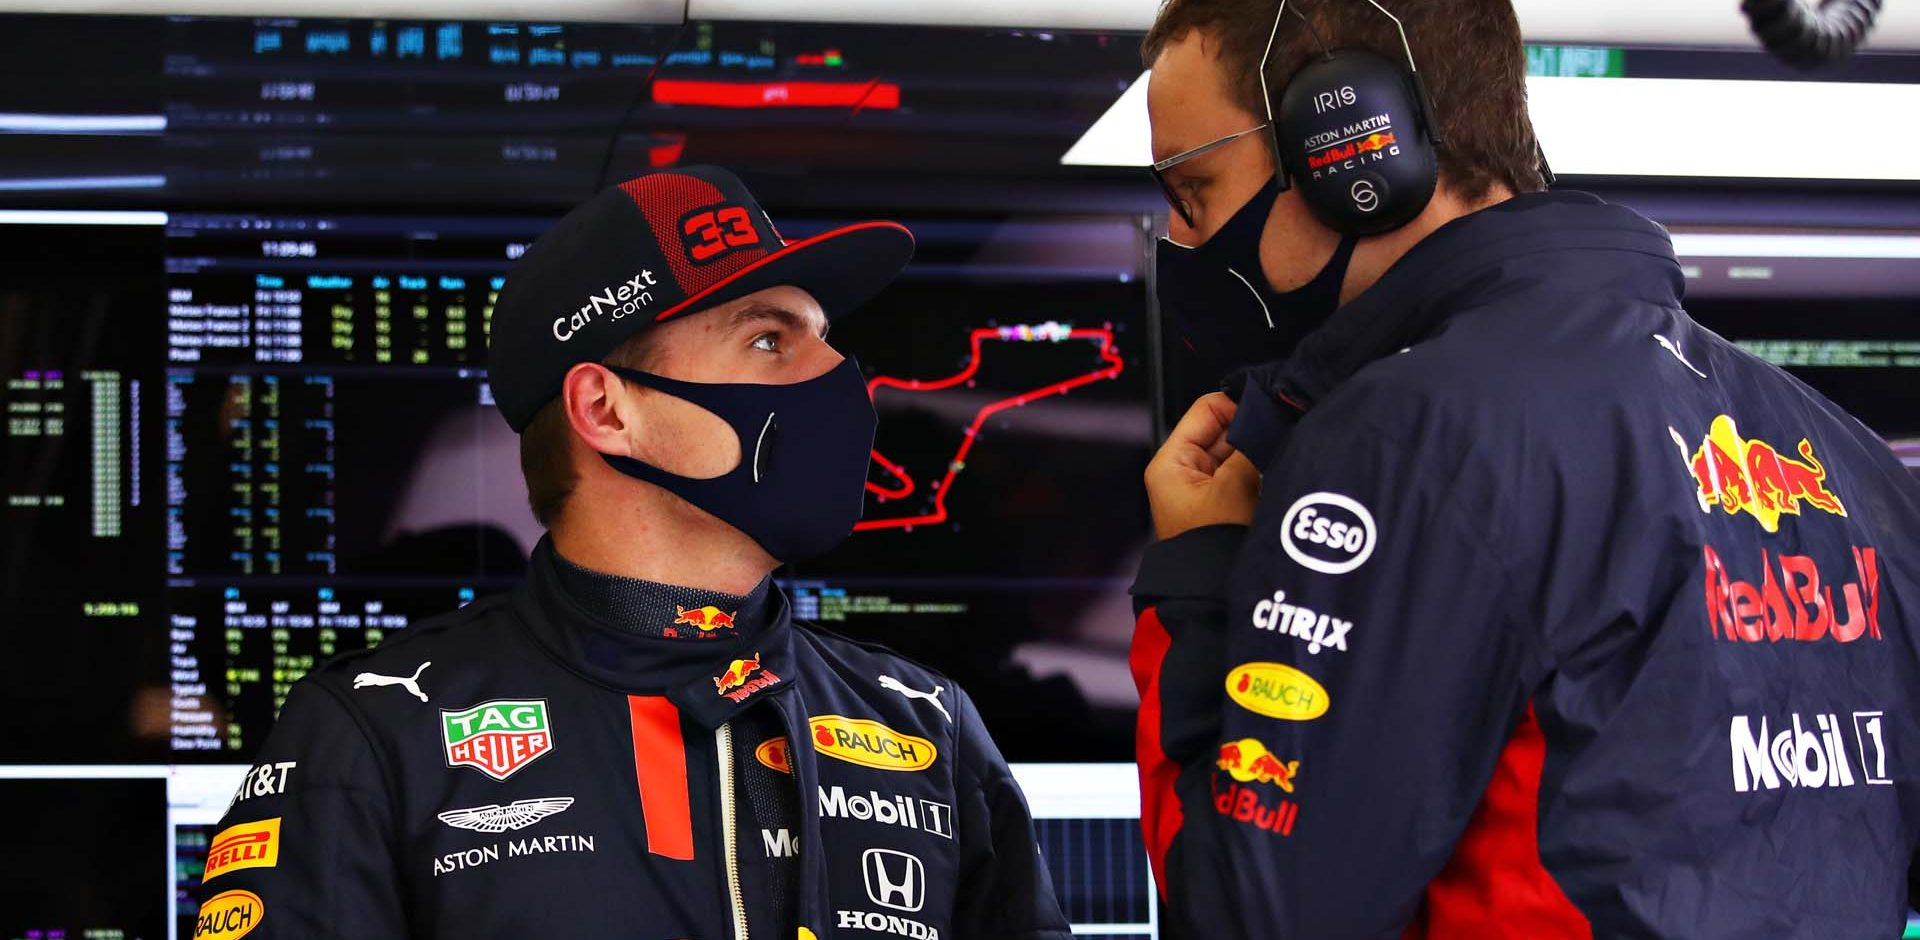 ISTANBUL, TURKEY - NOVEMBER 13: Max Verstappen of Netherlands and Red Bull Racing talks with a Red Bull Racing engineer in the garage during practice ahead of the F1 Grand Prix of Turkey at Intercity Istanbul Park on November 13, 2020 in Istanbul, Turkey. (Photo by Bryn Lennon/Getty Images)